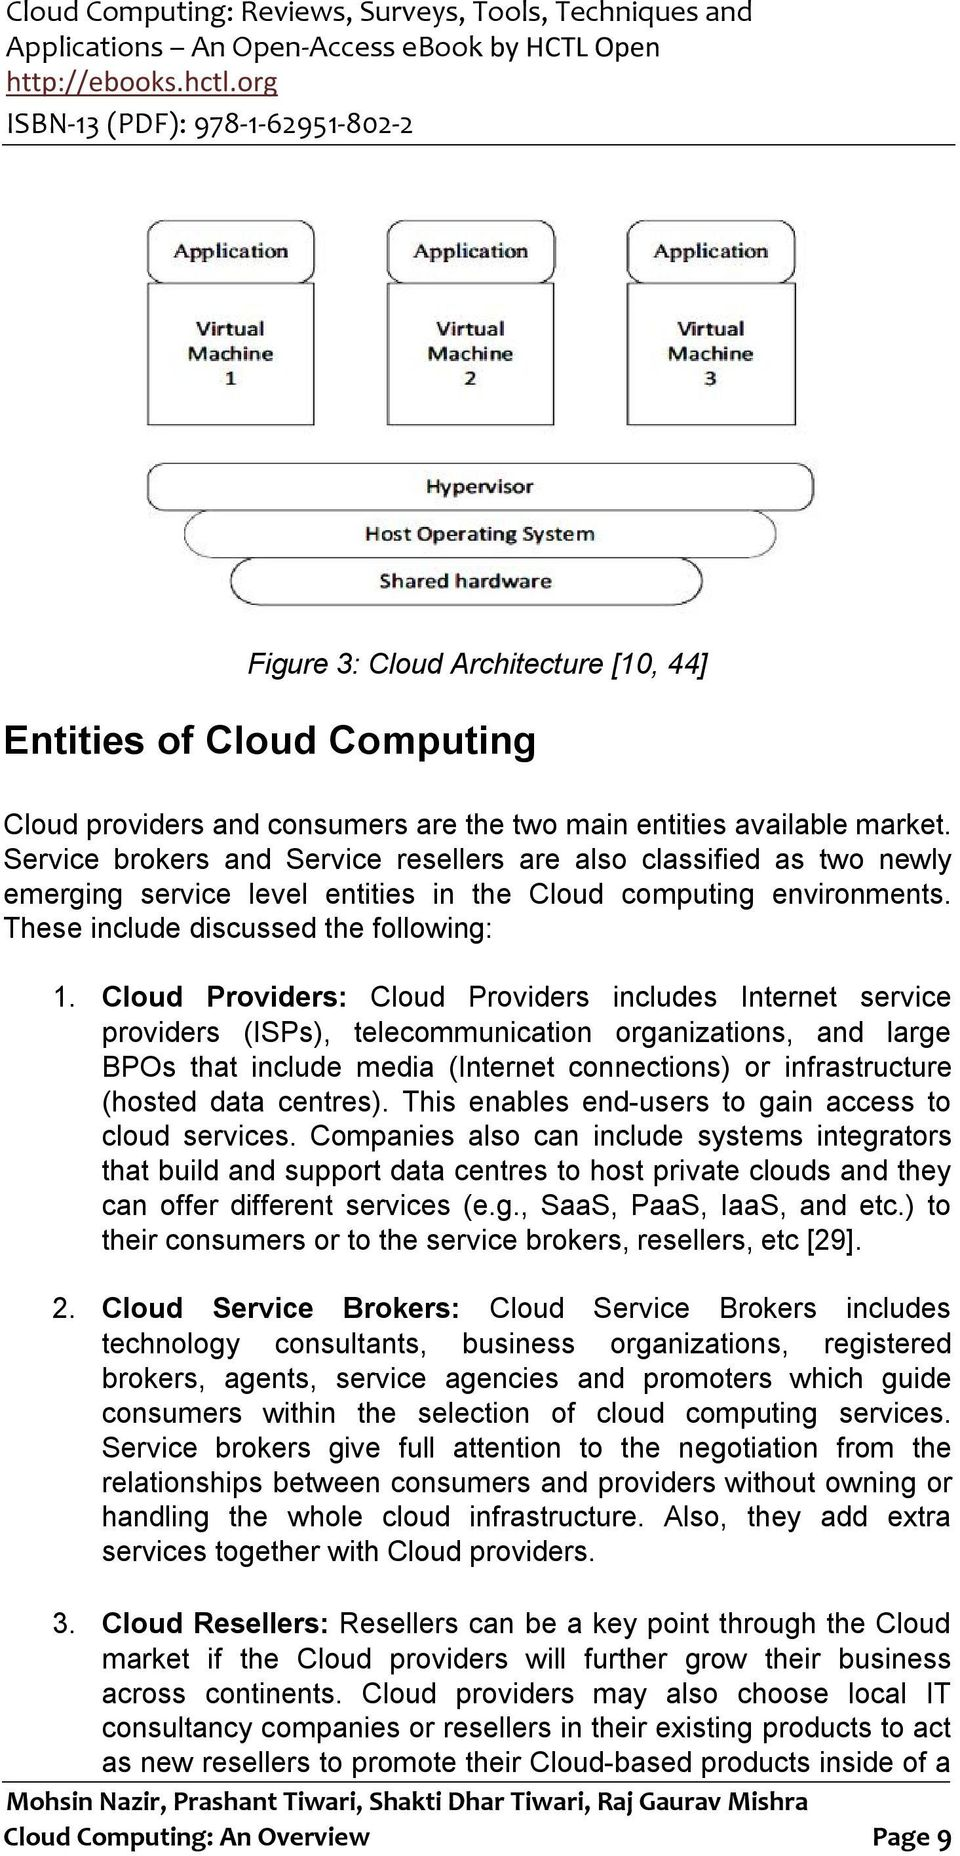 Cloud Providers: Cloud Providers includes Internet service providers (ISPs), telecommunication organizations, and large BPOs that include media (Internet connections) or infrastructure (hosted data